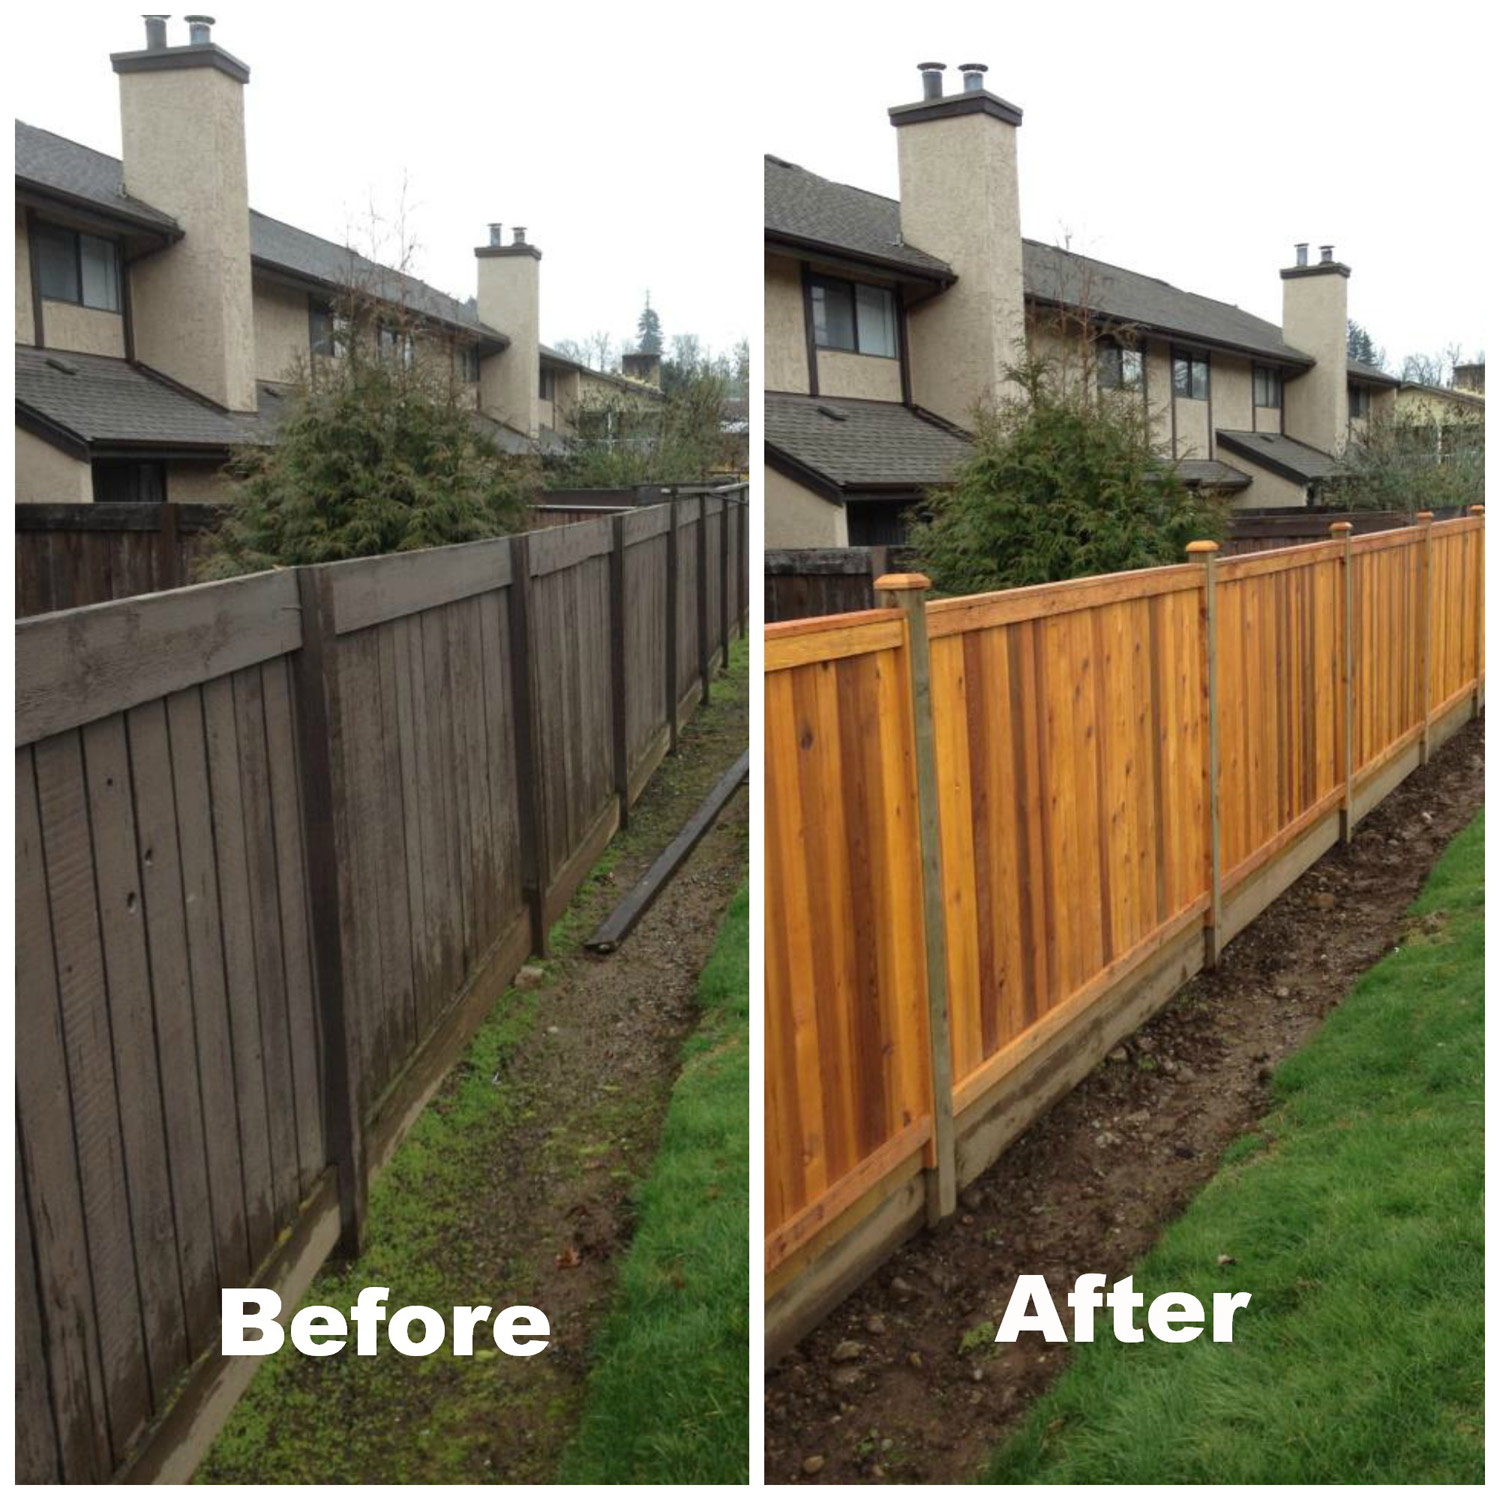 Why You Need To Rebuild Your Fence Before You Sell Your Home